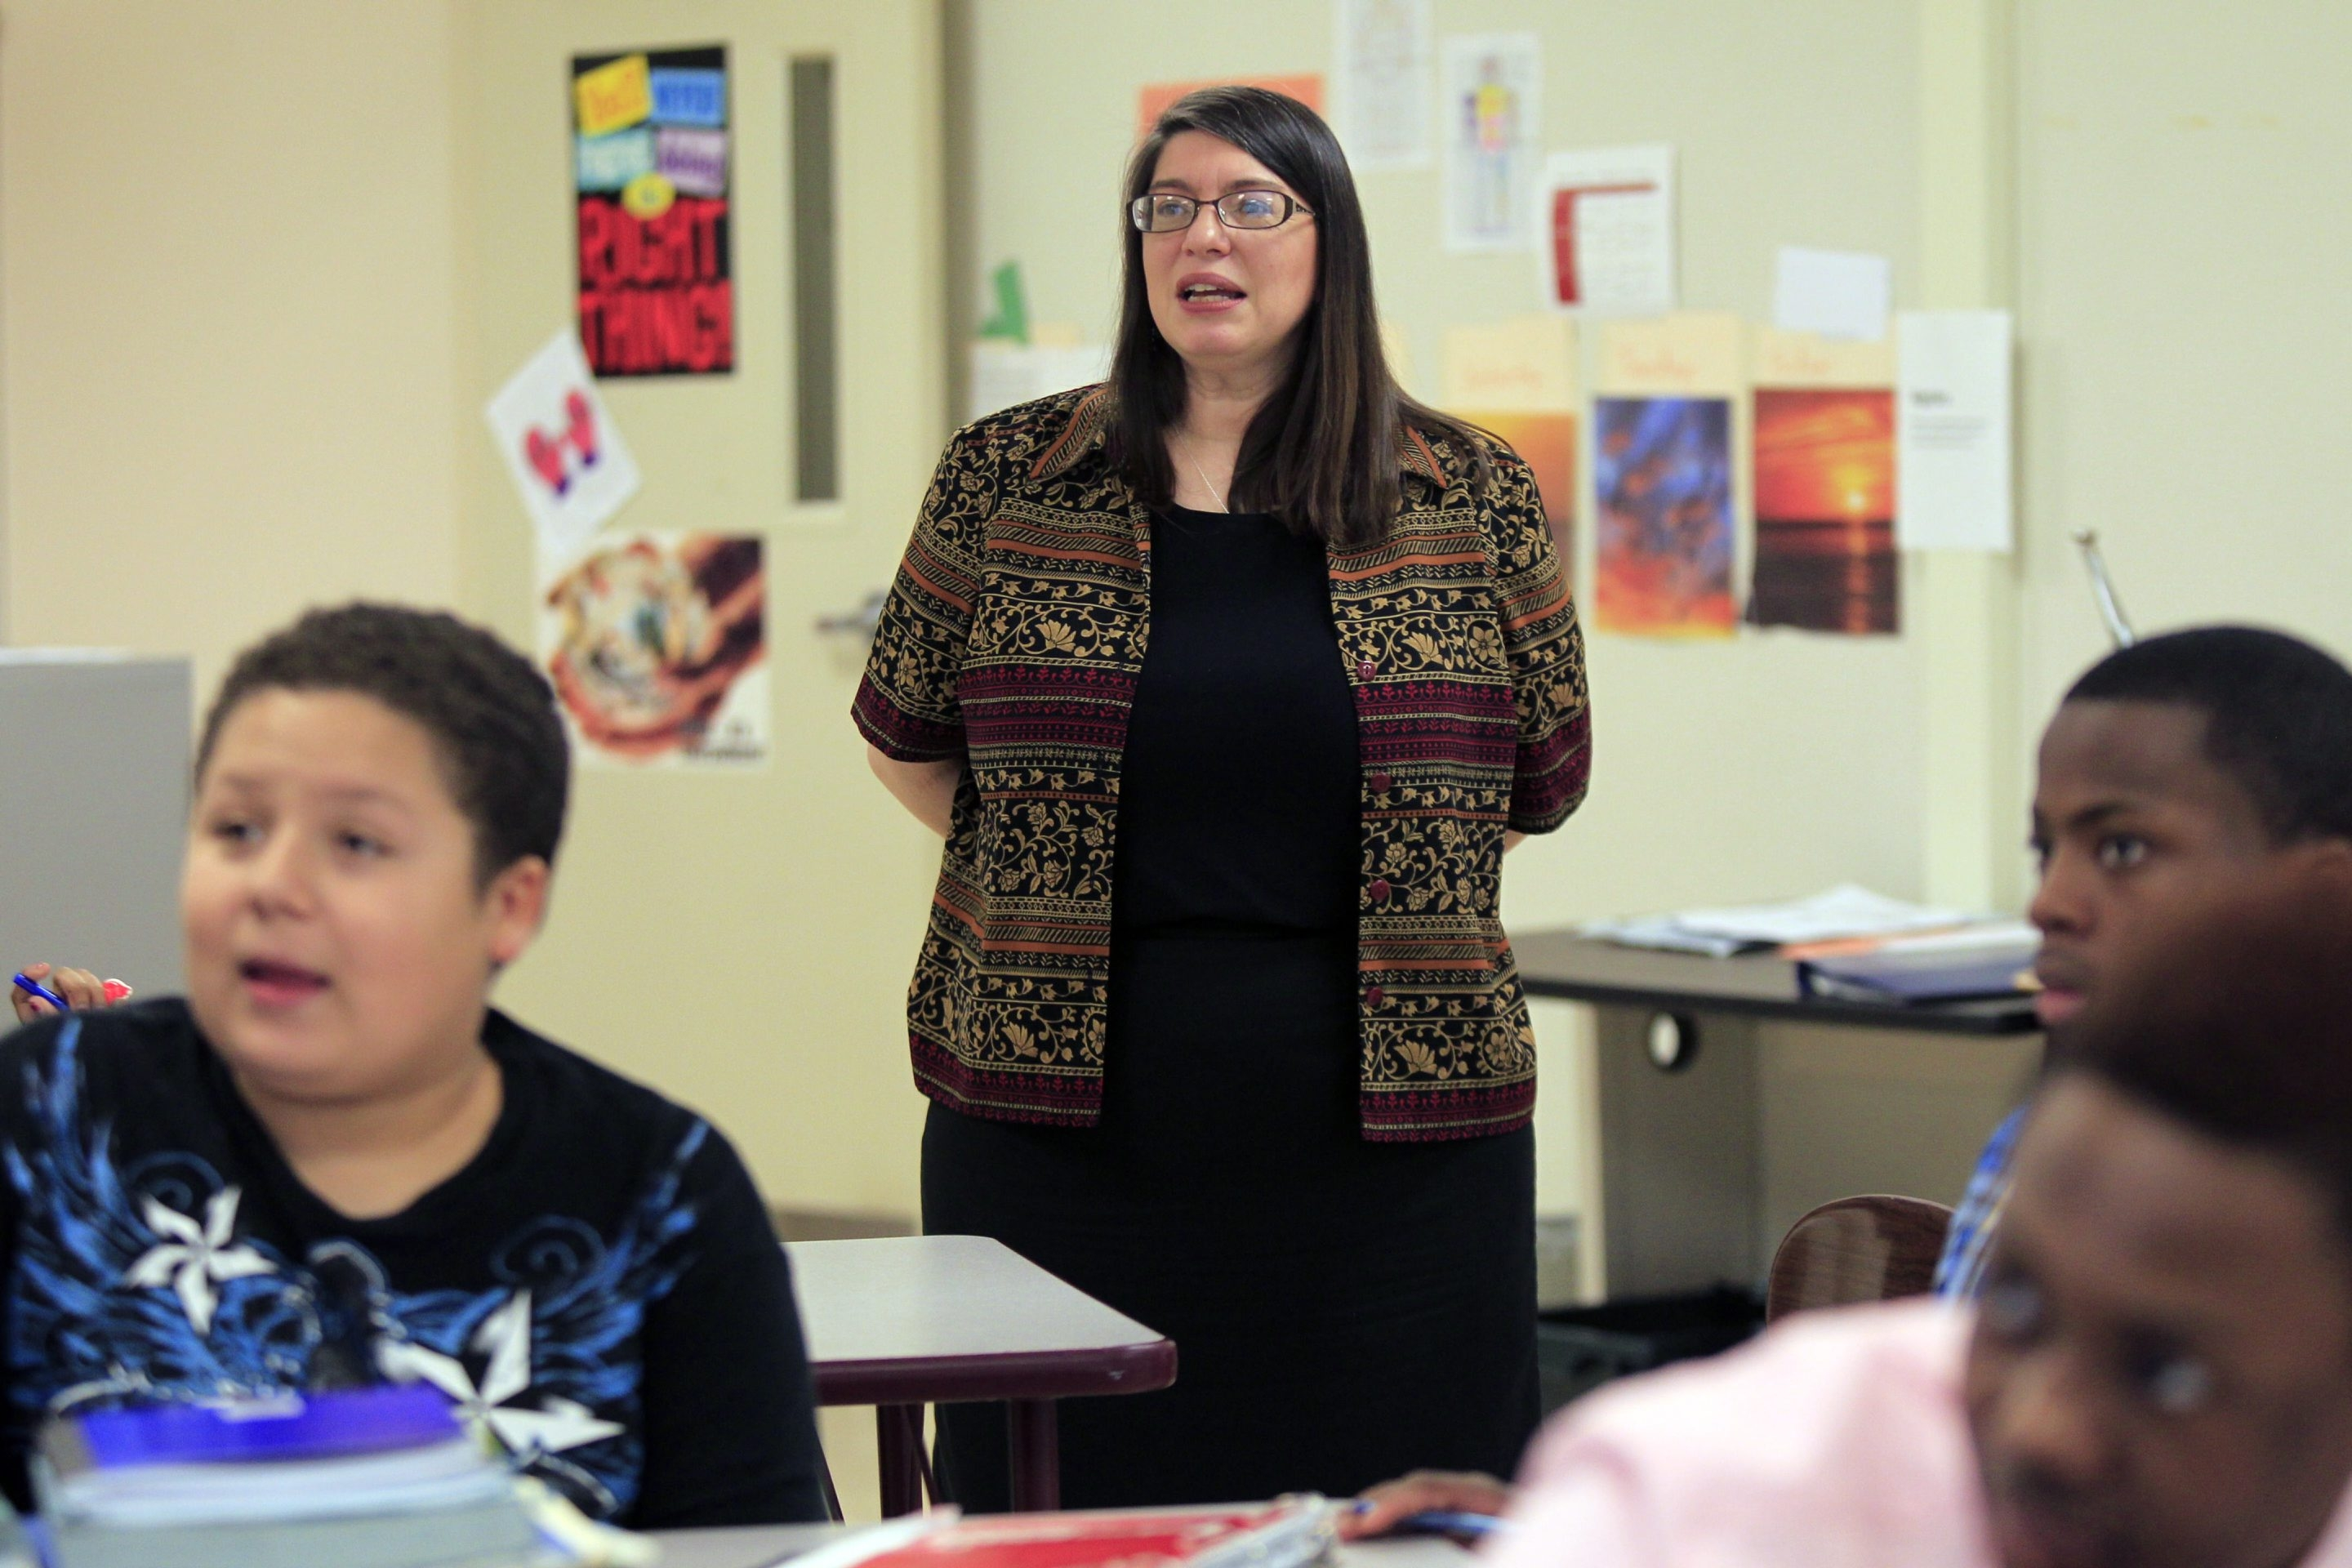 How Teachers Help Students Whove >> Teachers Rise To The Head Of The Class The Buffalo News